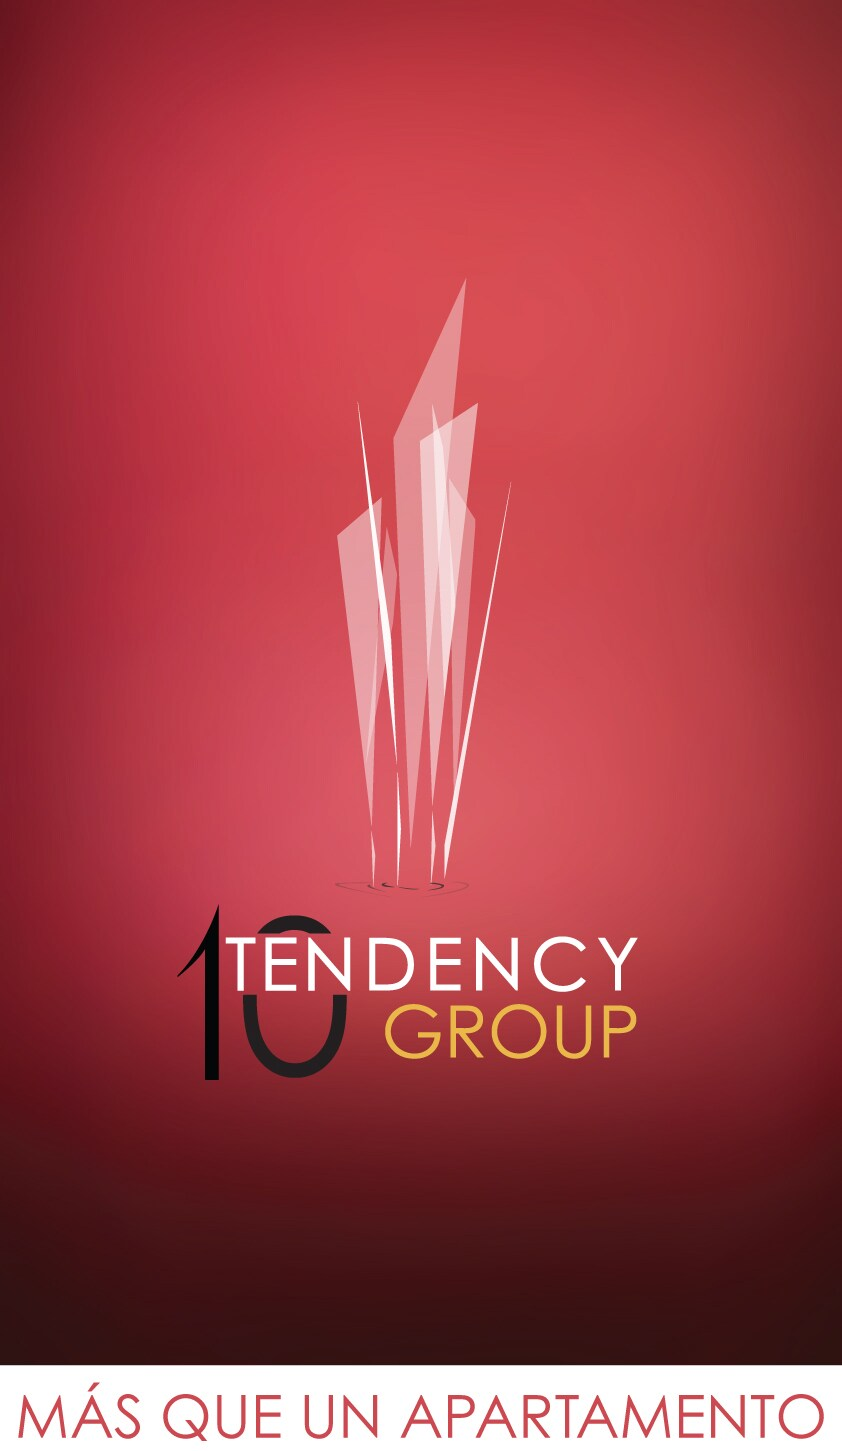 We are owners of several apartments Tendency Group